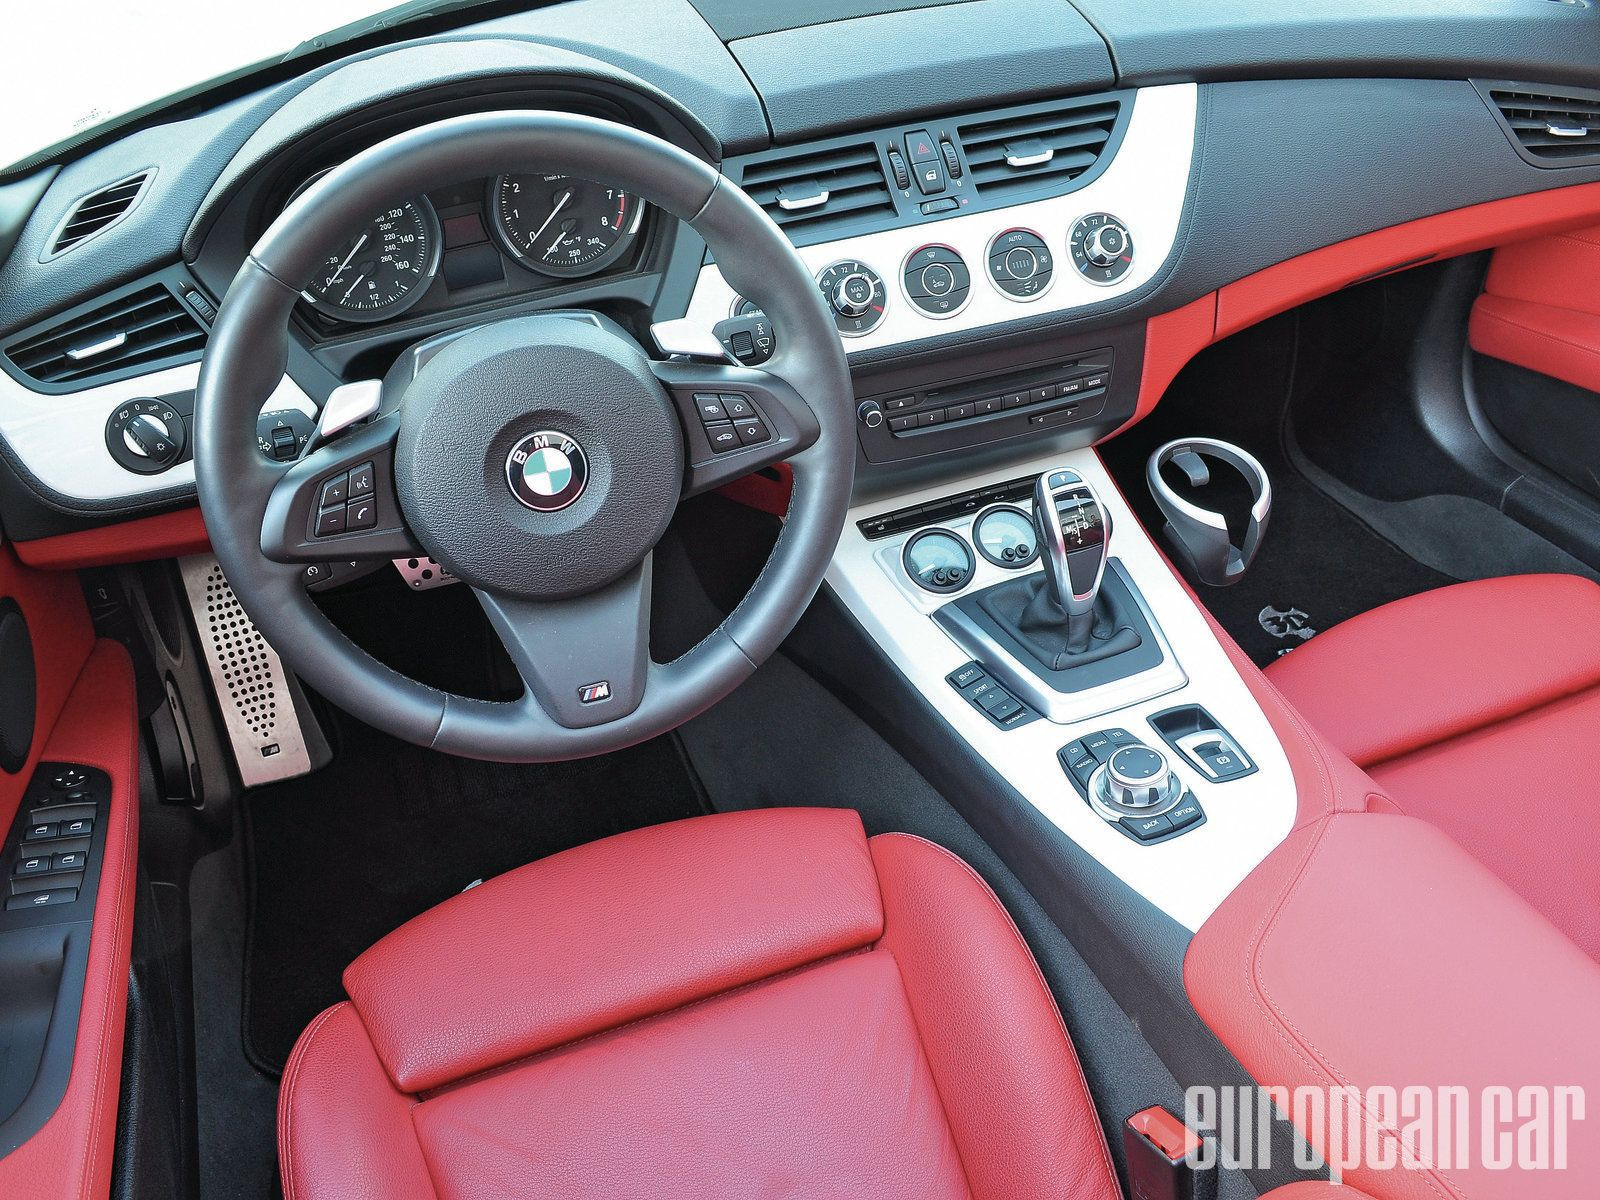 ... 35i+interior Photo 14/20 | 2010 BMW Z4 35i and 2006 BMW Z4 M Coupe - Sibling Disobedience